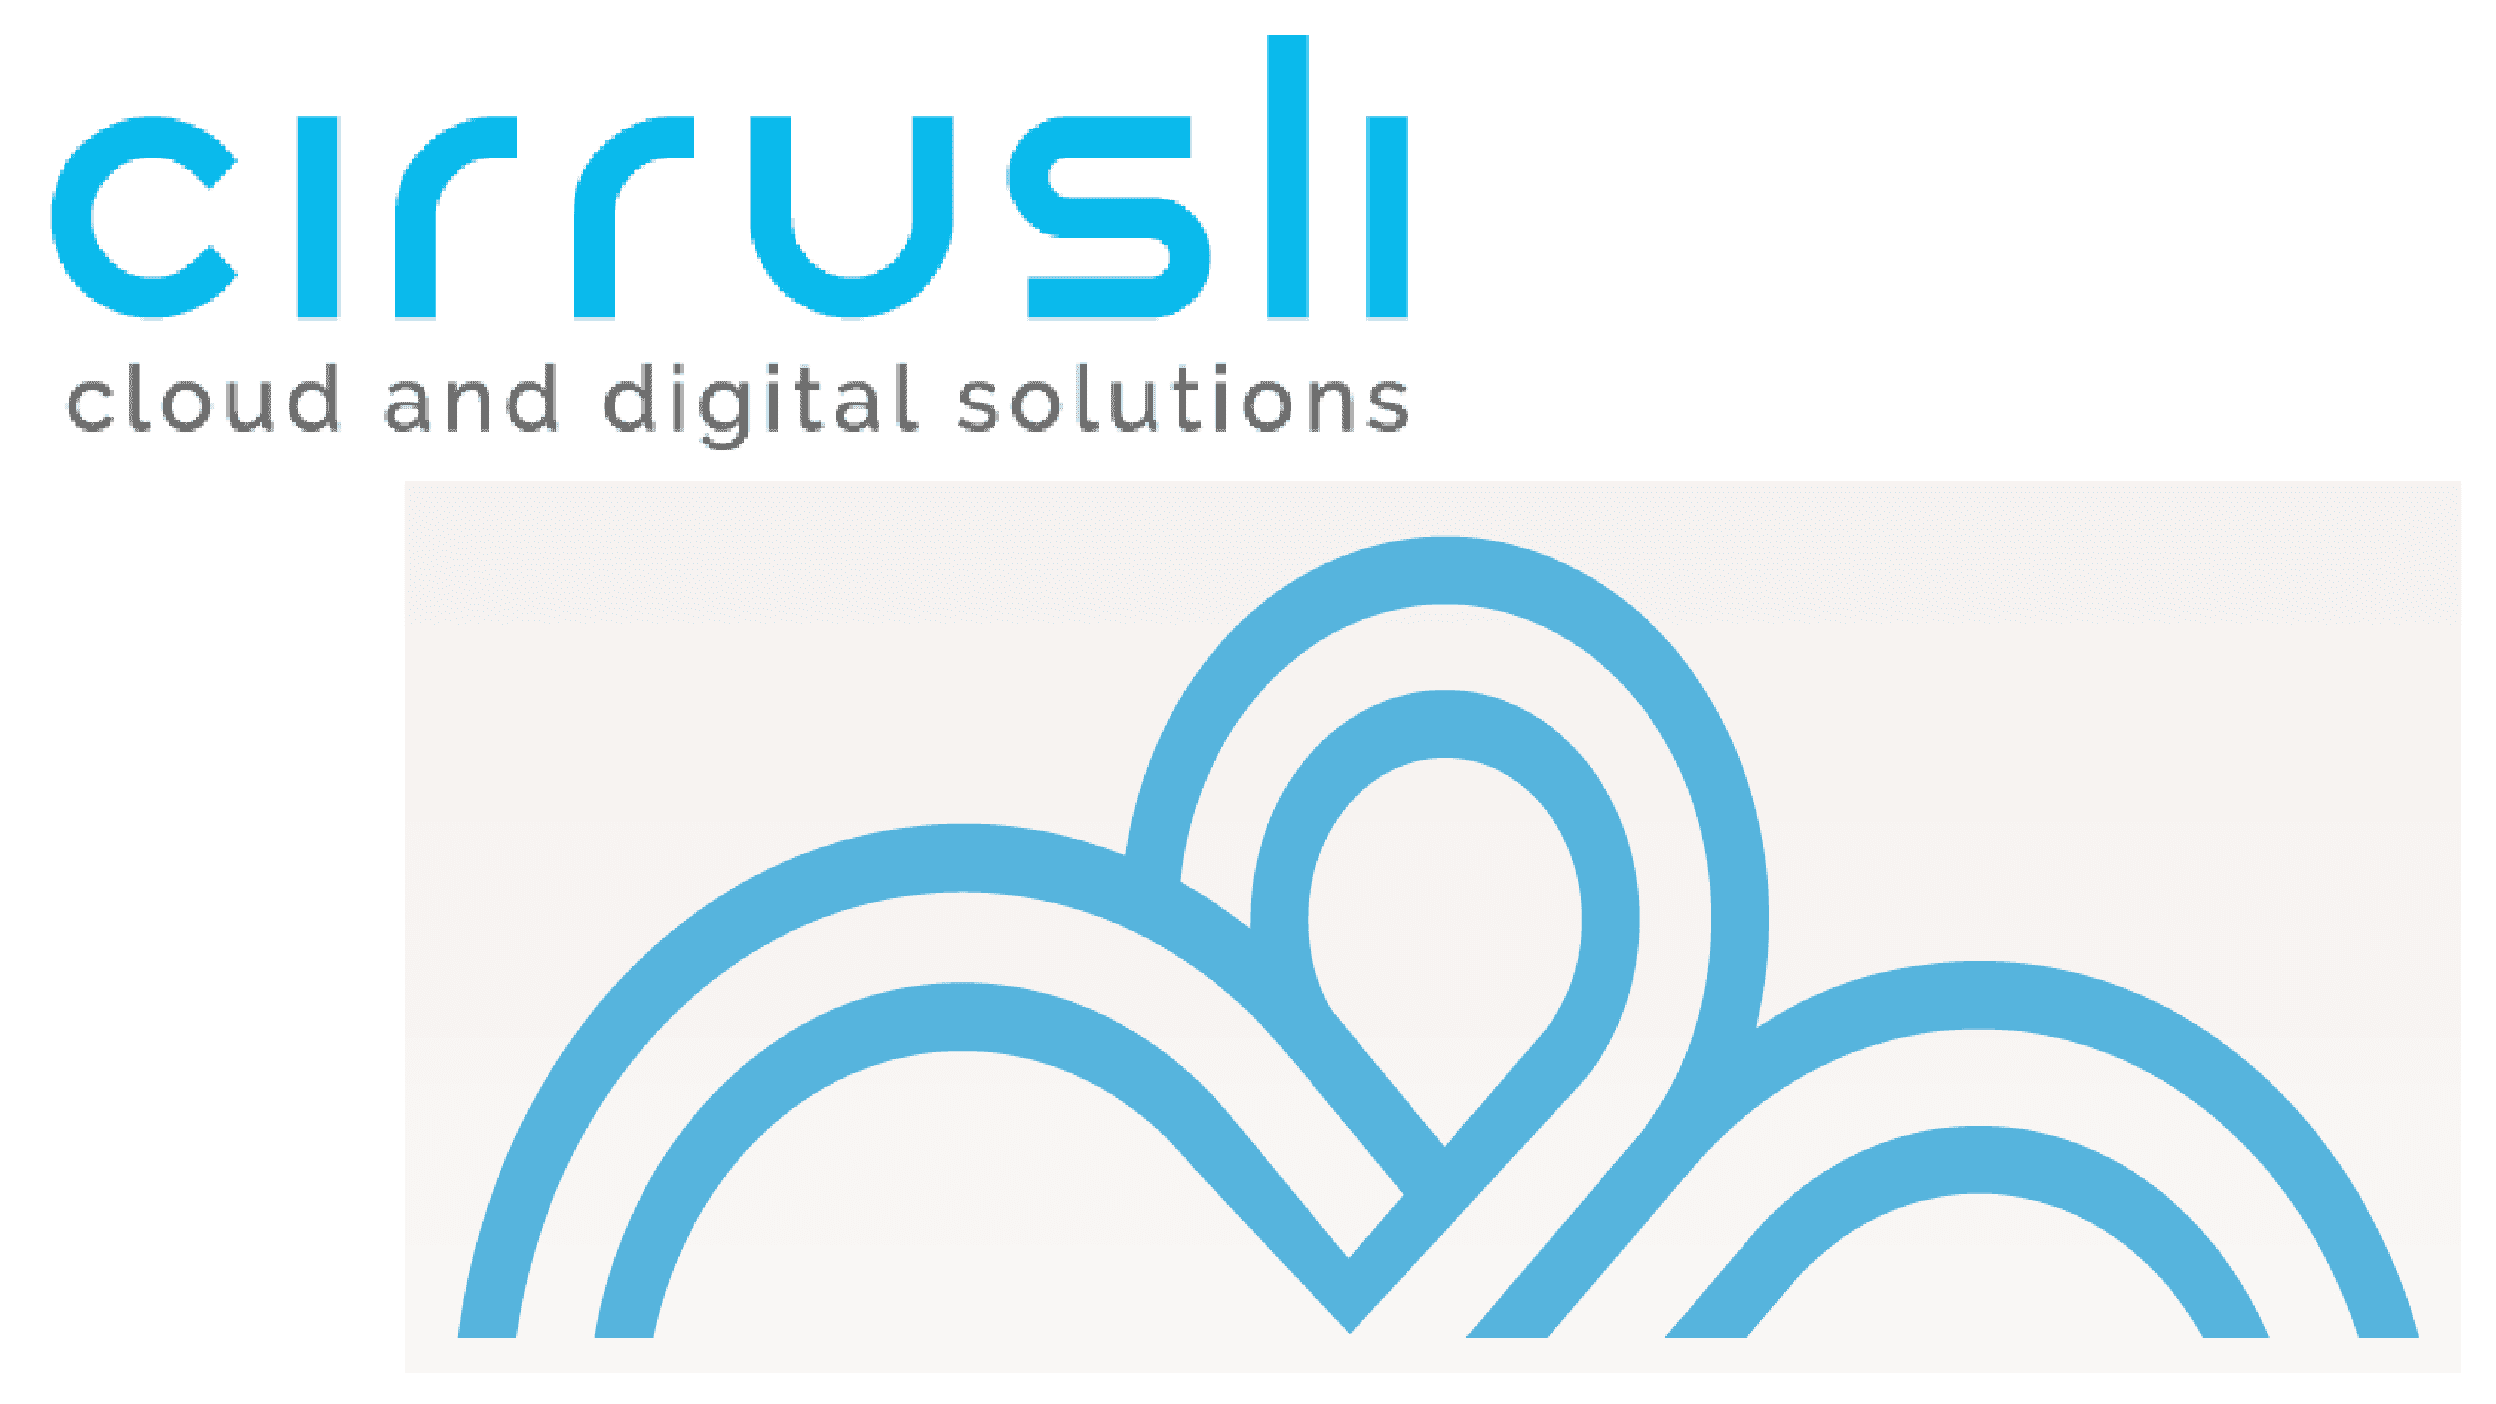 Cirrusli cloud and digital solutions logo